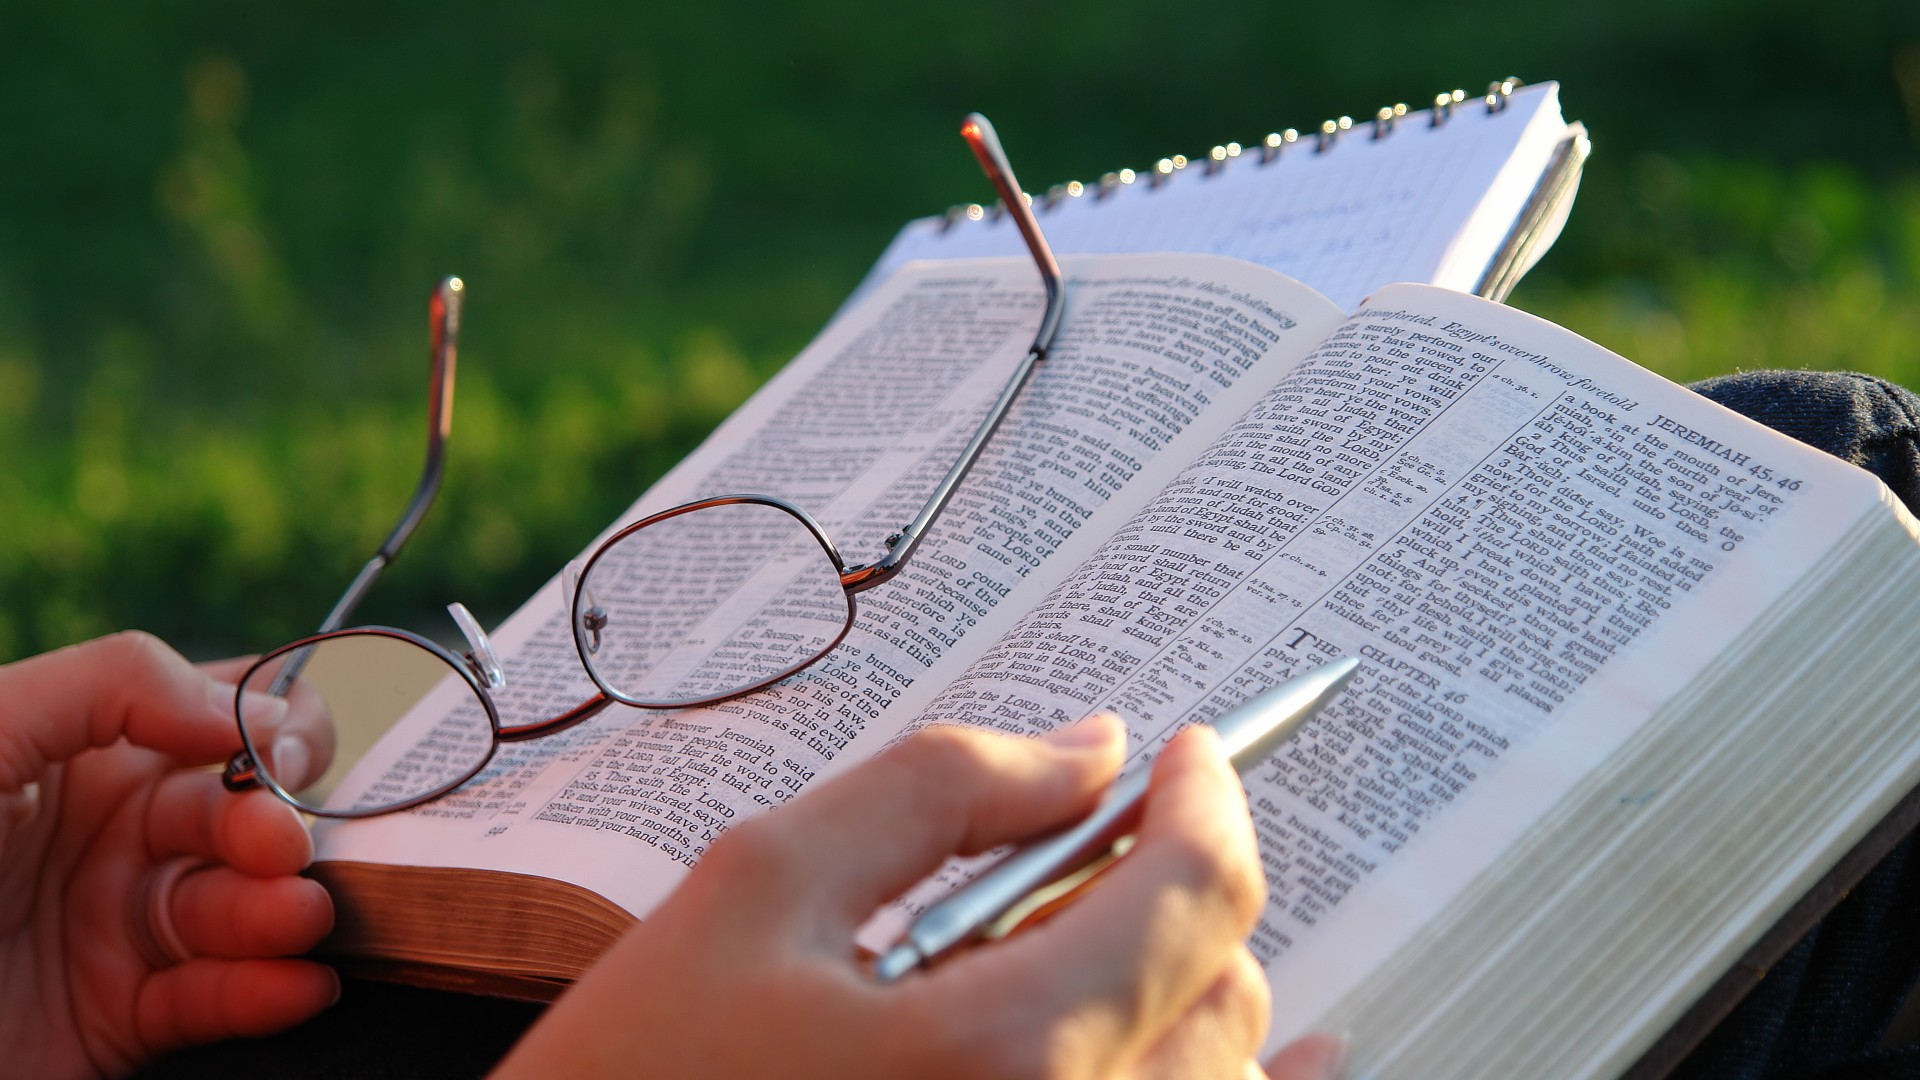 Close-up of a woman's hands holding her glasses and studying the Bible